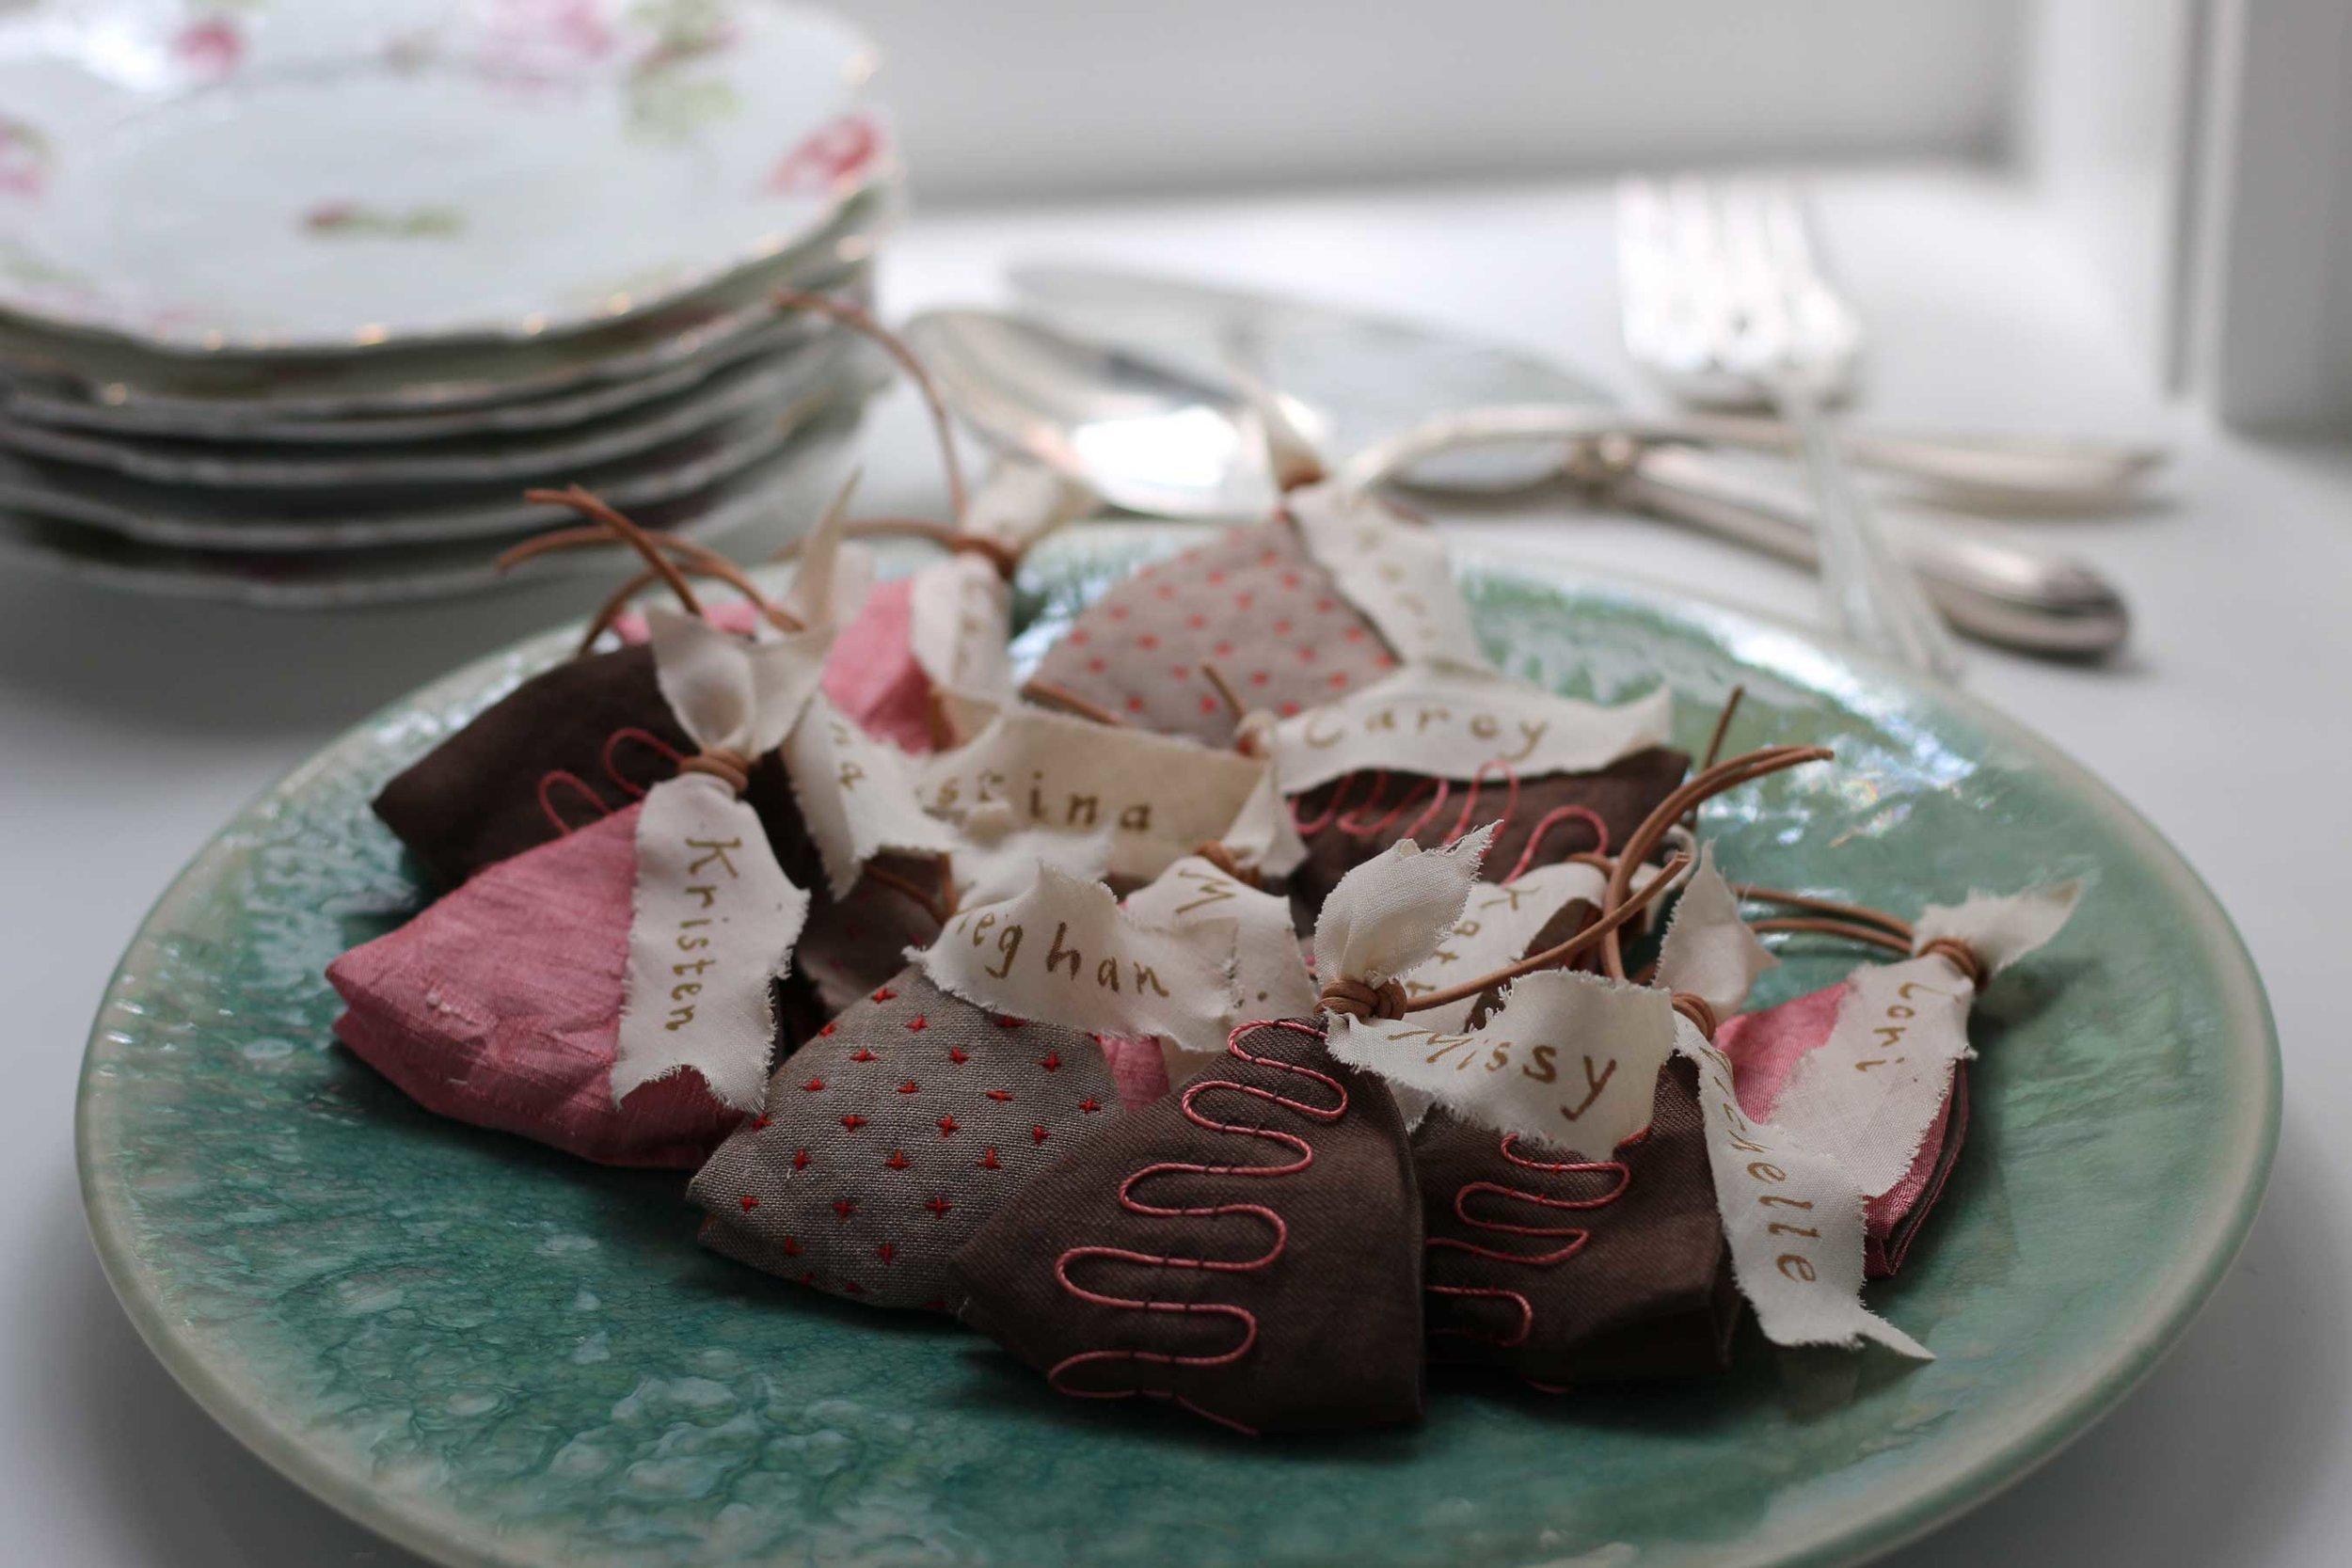 Preparing for a special dinner party with friends. Why not place a hand-stitched sachet at each place setting? Better still, make your own holiday sachet blend with lavender, cinnamon, cardamom, orange peel and minced ginger. Such a happy fragrance.